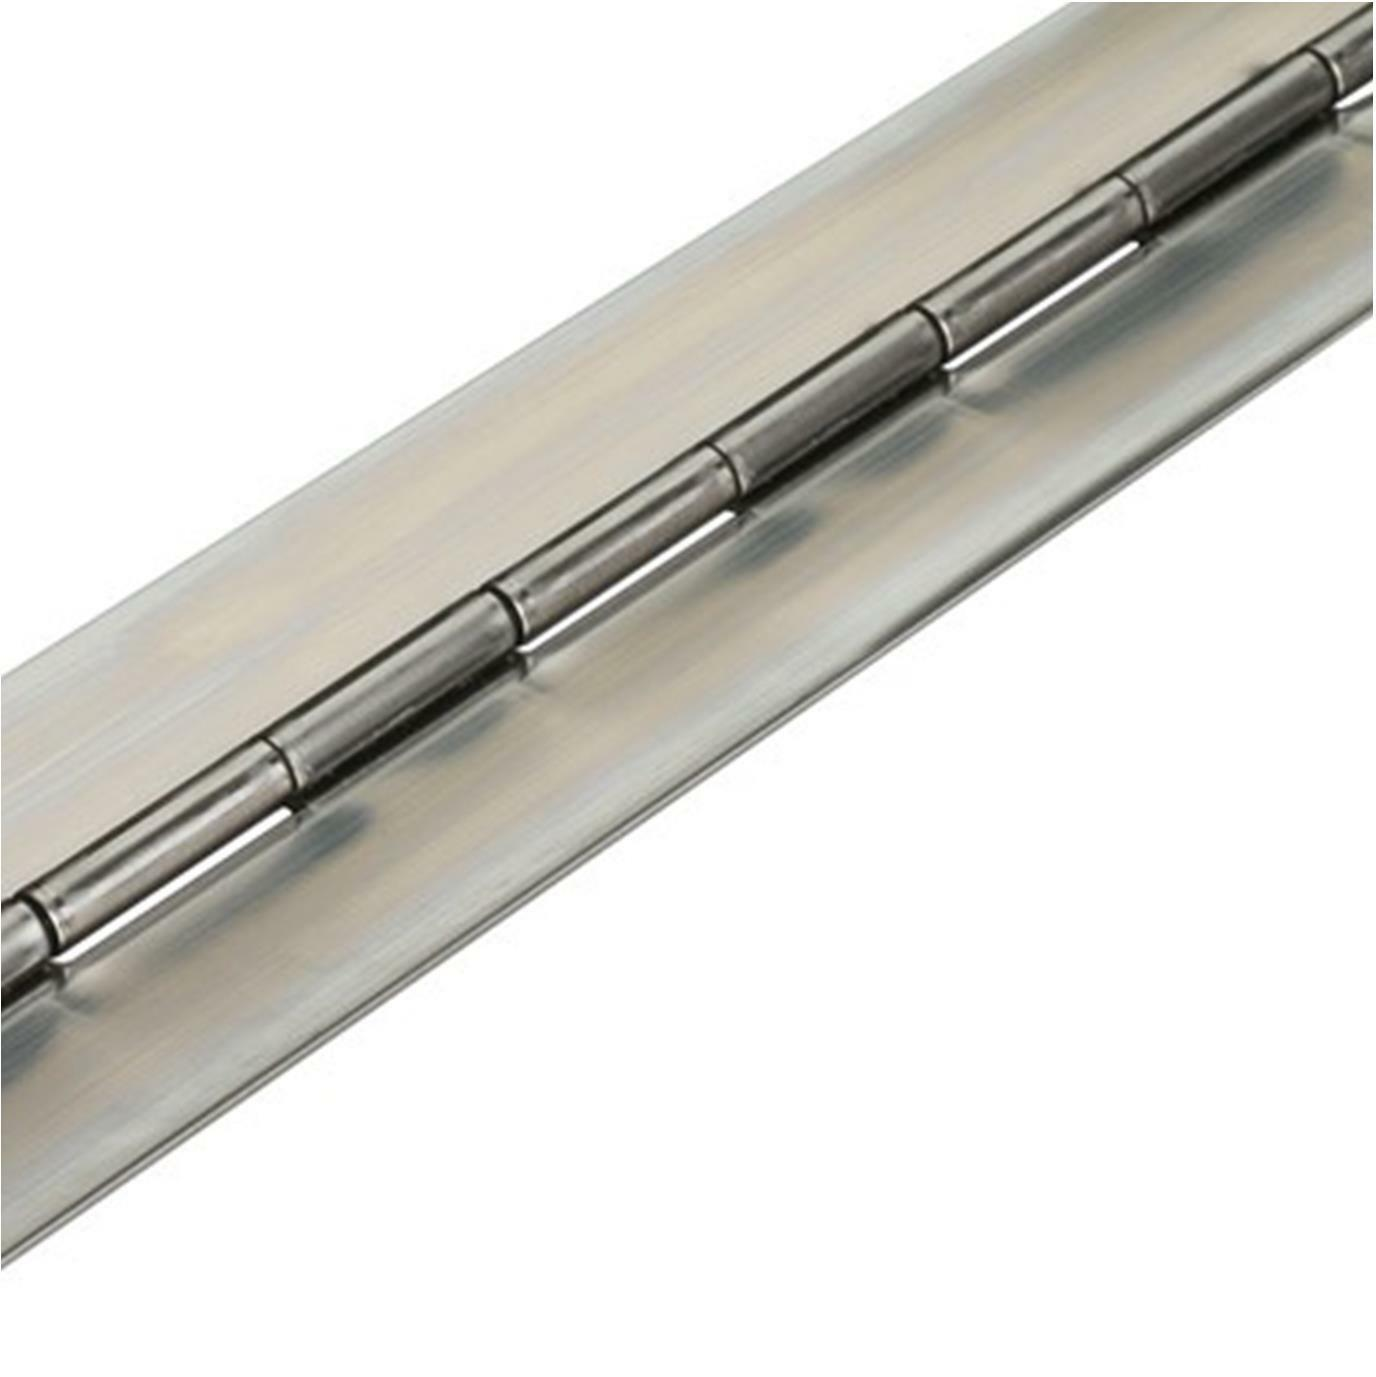 Stainless Steel Piano Hinge 900mm Length